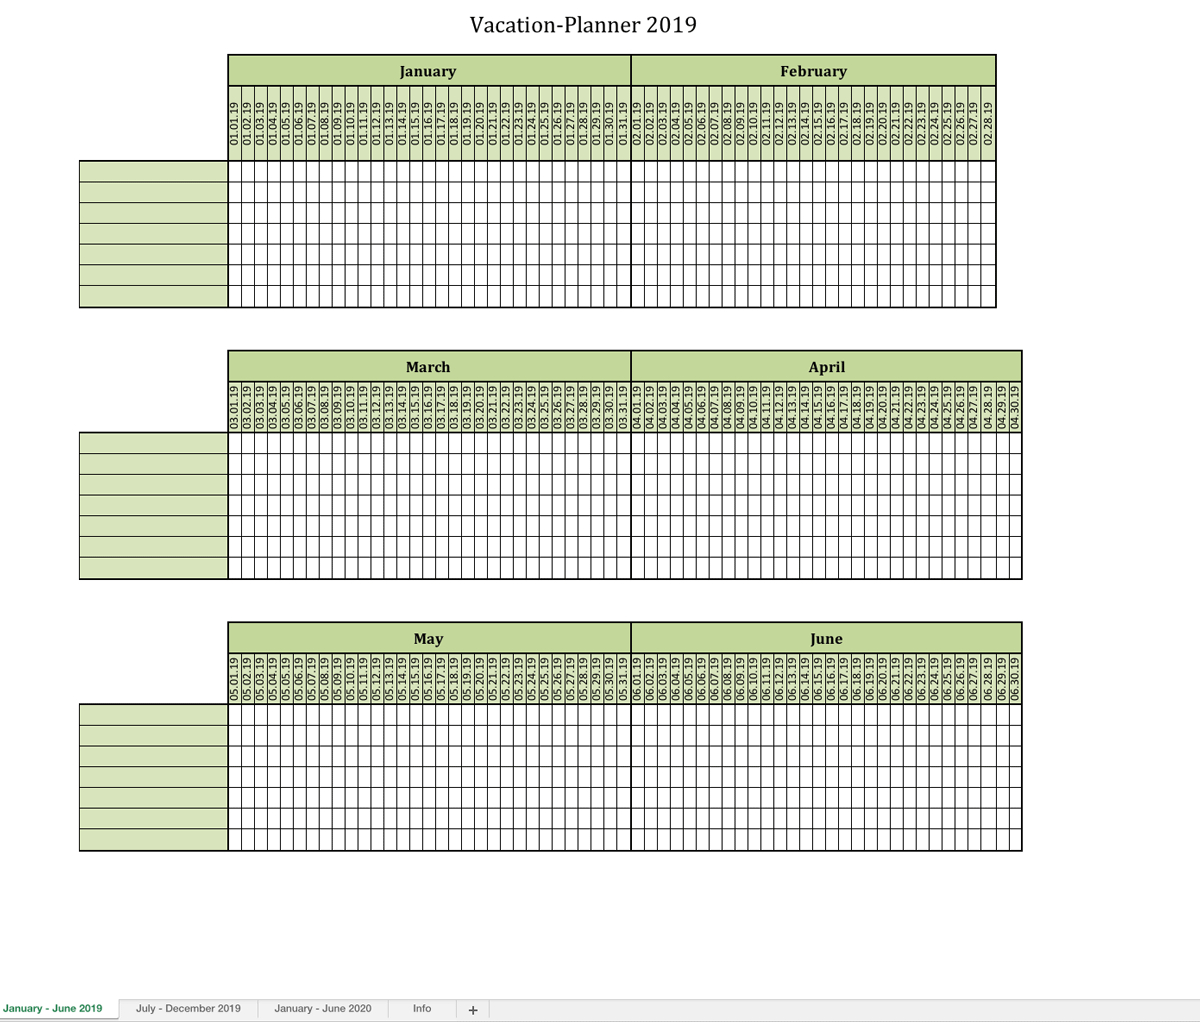 Vacation-Planner 2019 | Excel Templates For Every Purpose pertaining to Calendar Template Excel Vacations